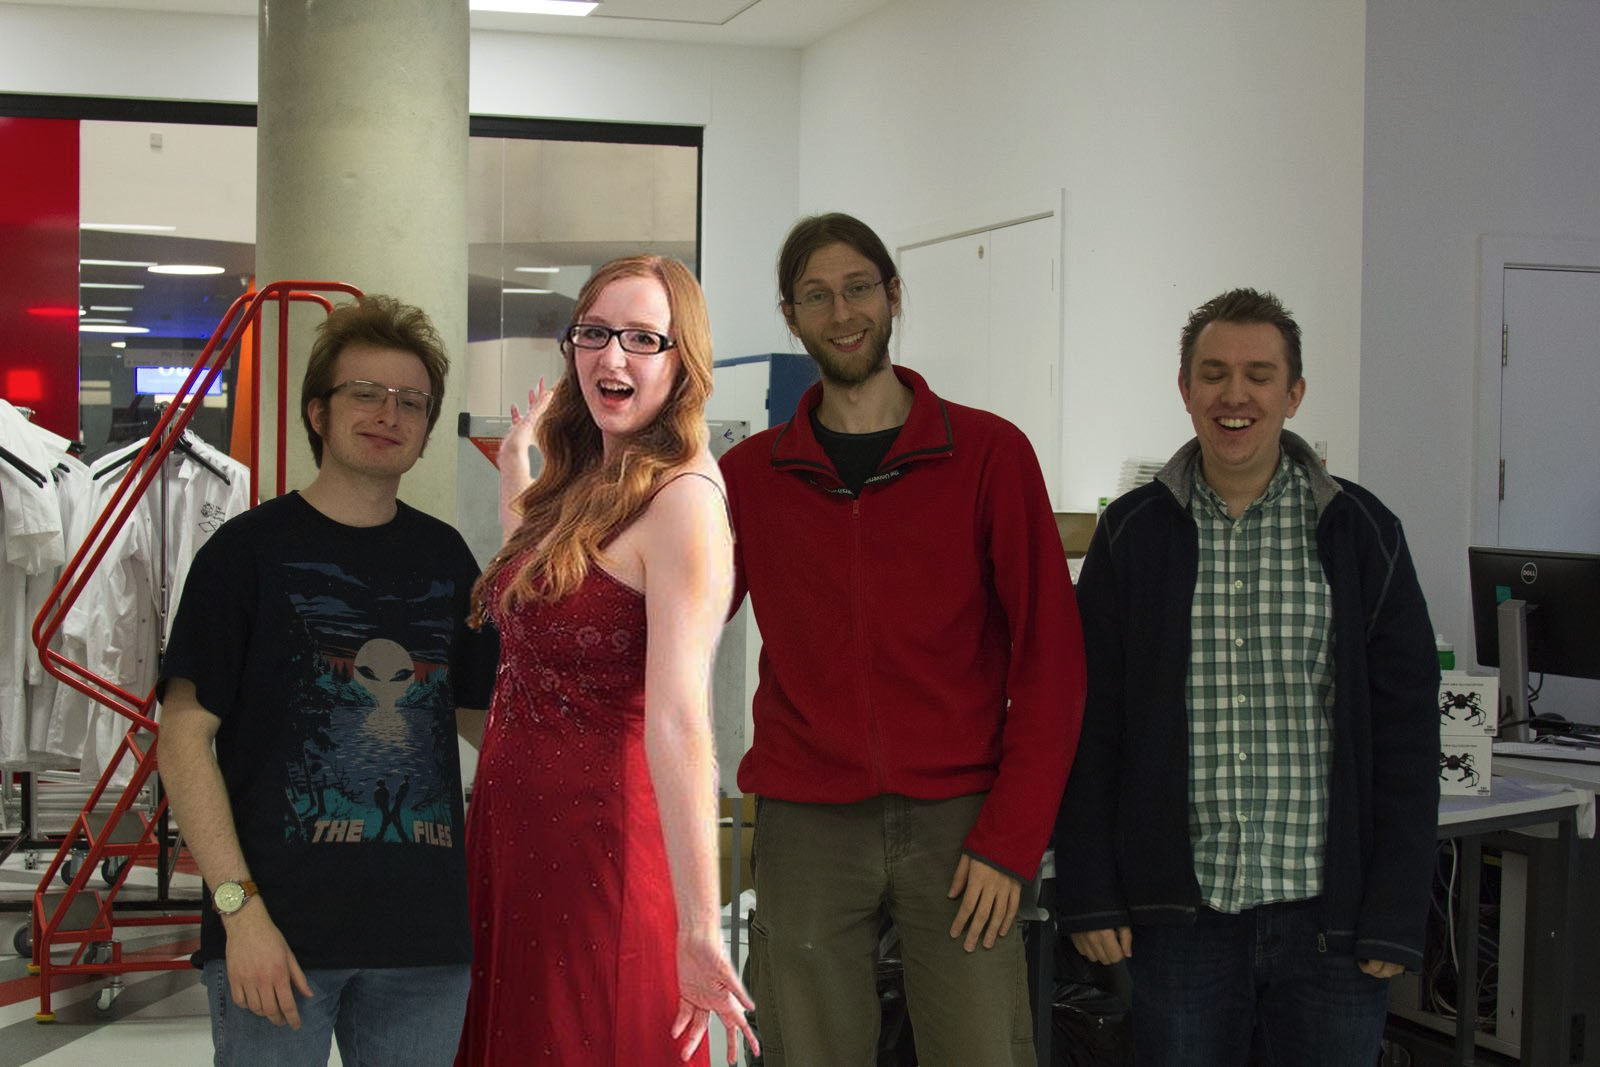 Image Showing all four members of our group - including a photoshopped in Rebecca